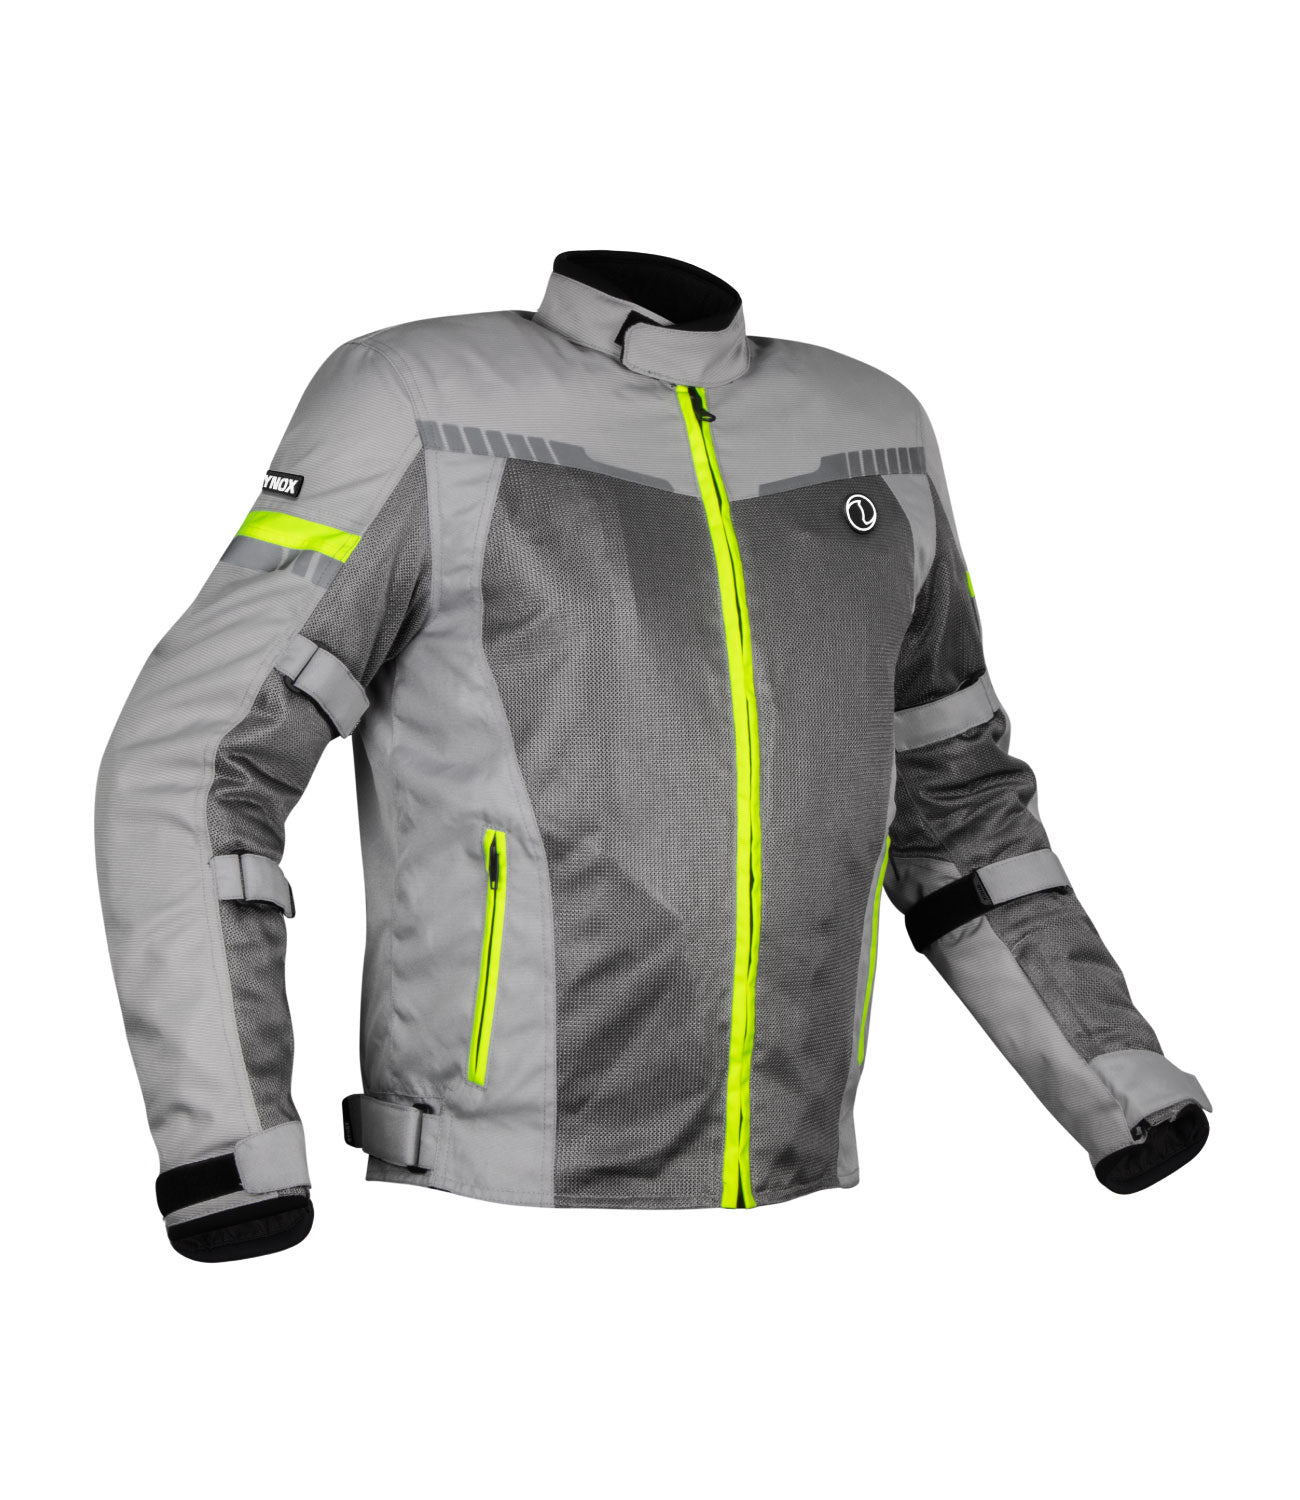 AIR GT 3 JACKET - Rynox Gears - Apparel